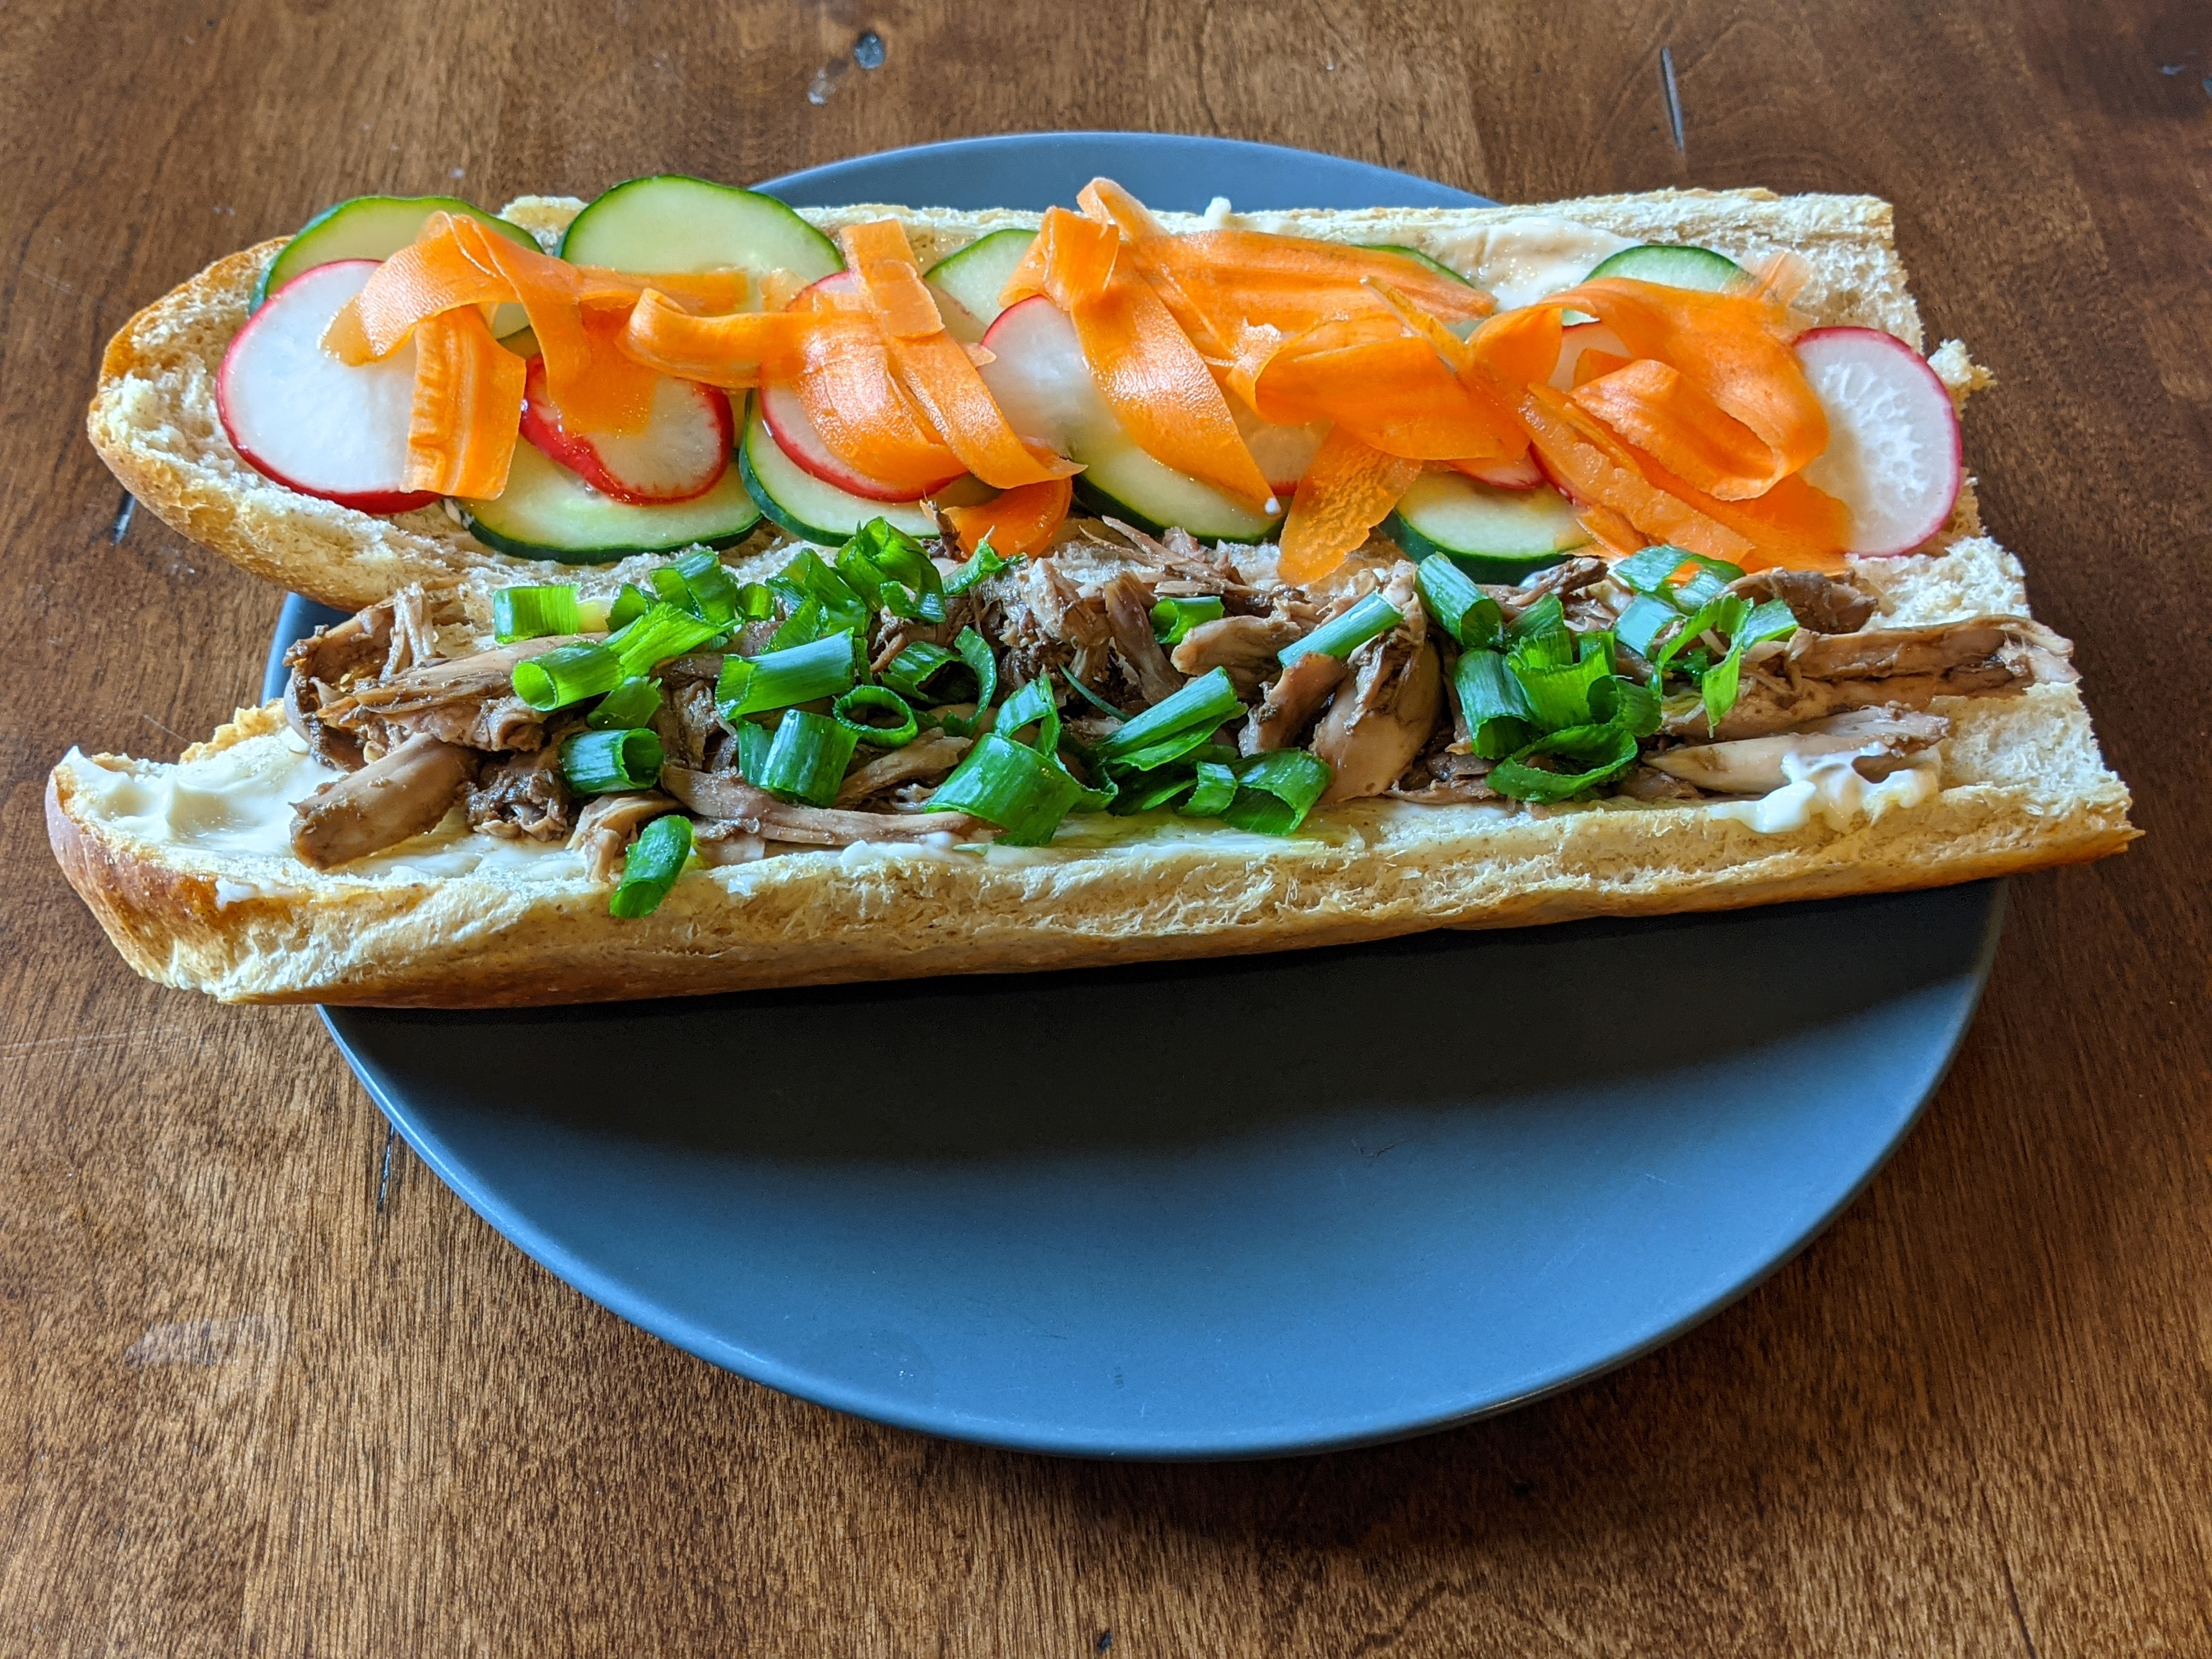 The Squirrel Banh Mi sandwich in it's luxurious final form.